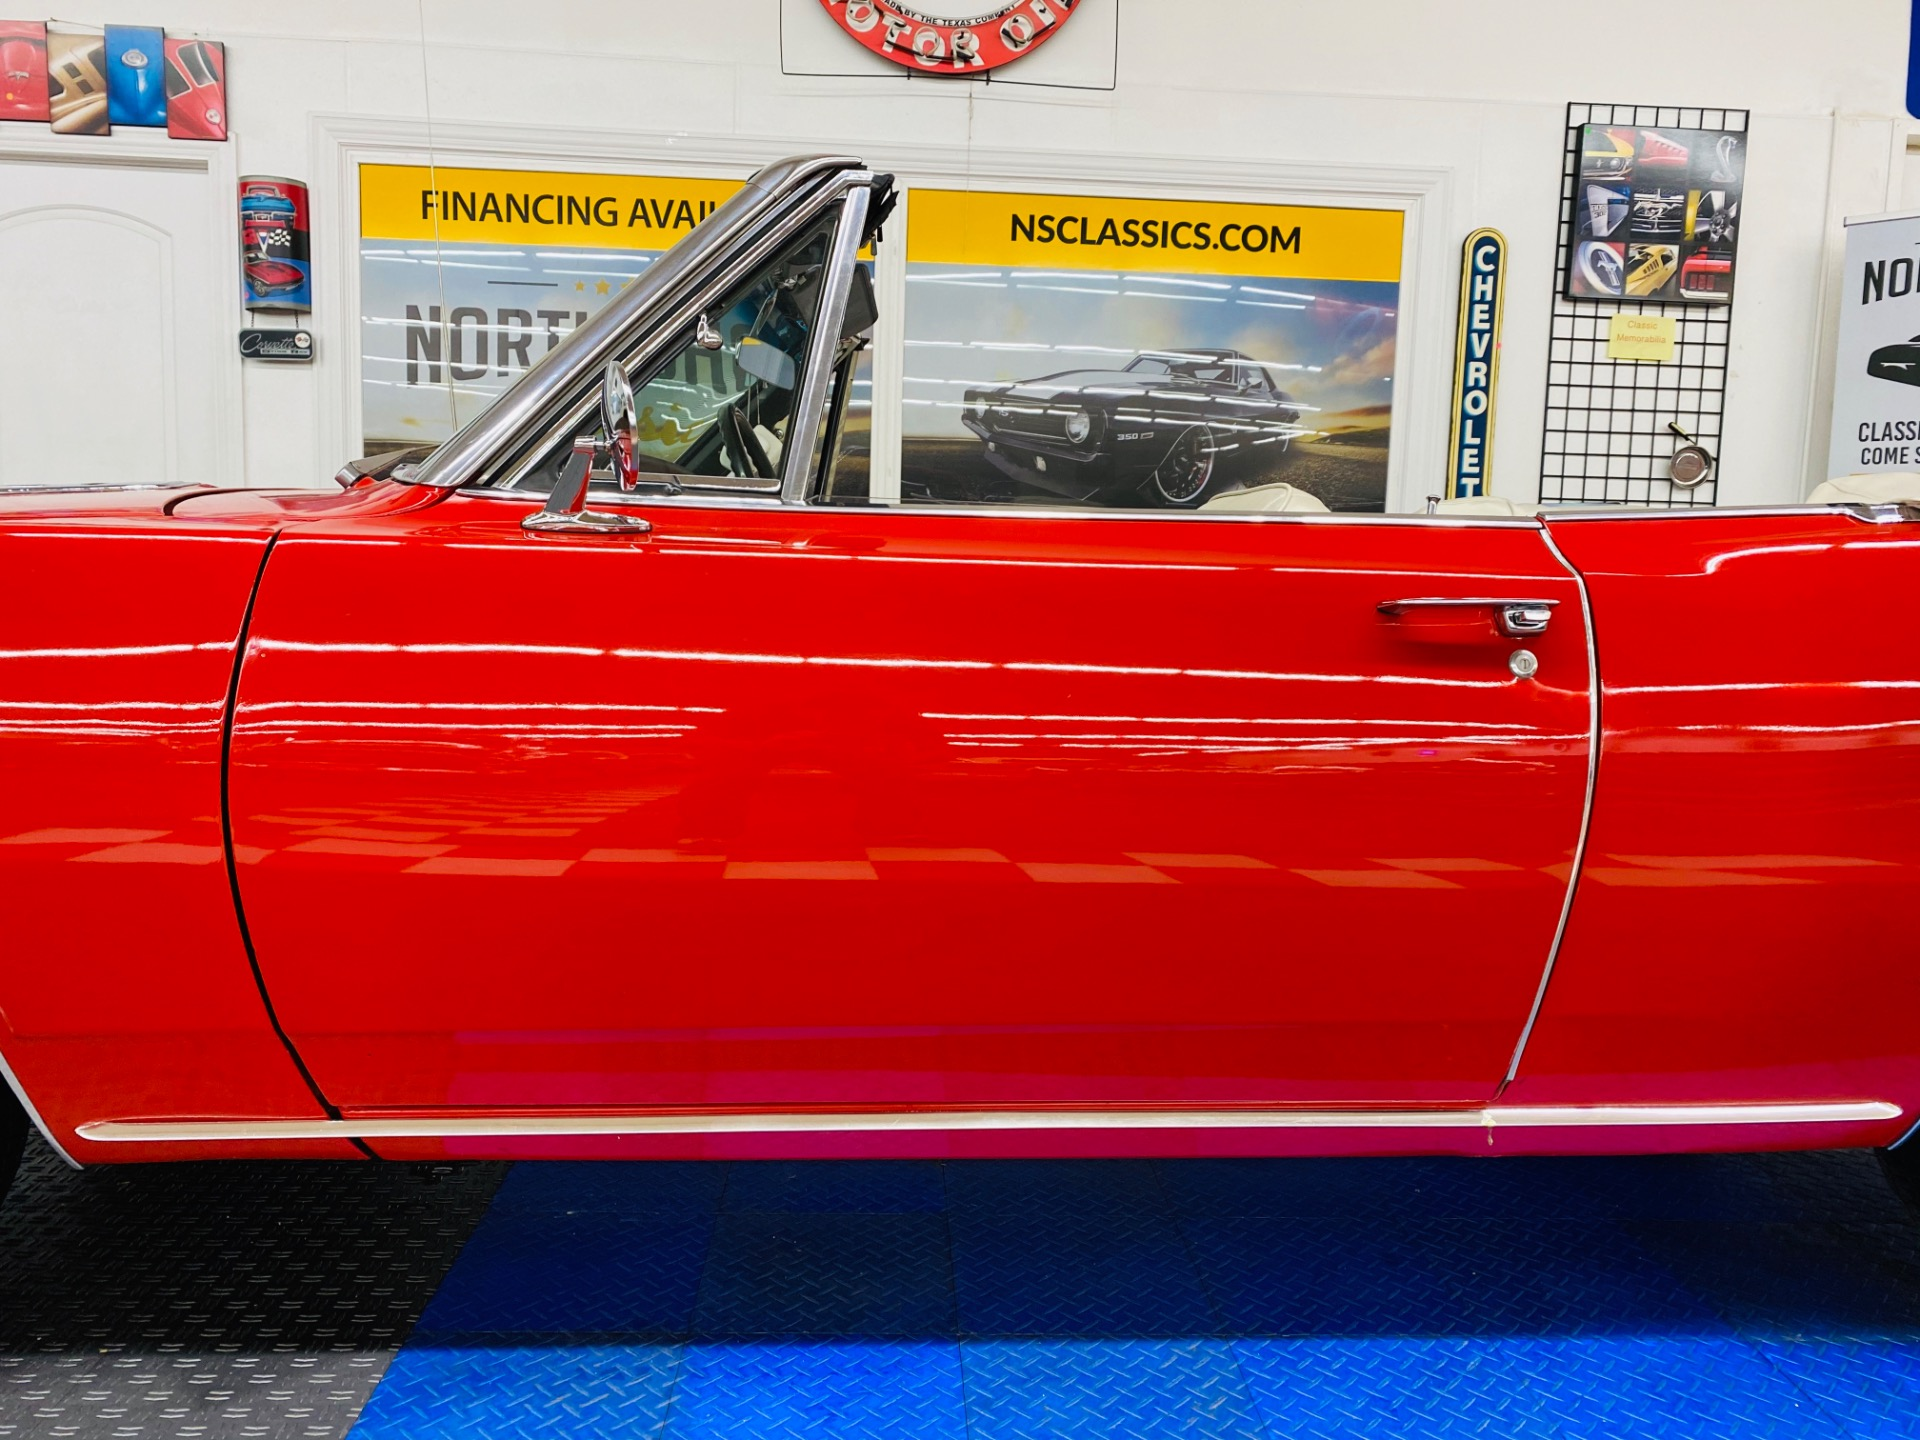 Used 1967 Plymouth Barracuda -CONVERTIBLE - 340 V8 ENGINE - VERY CLEAN - NICE PAINT - SEE VIDEO - | Mundelein, IL